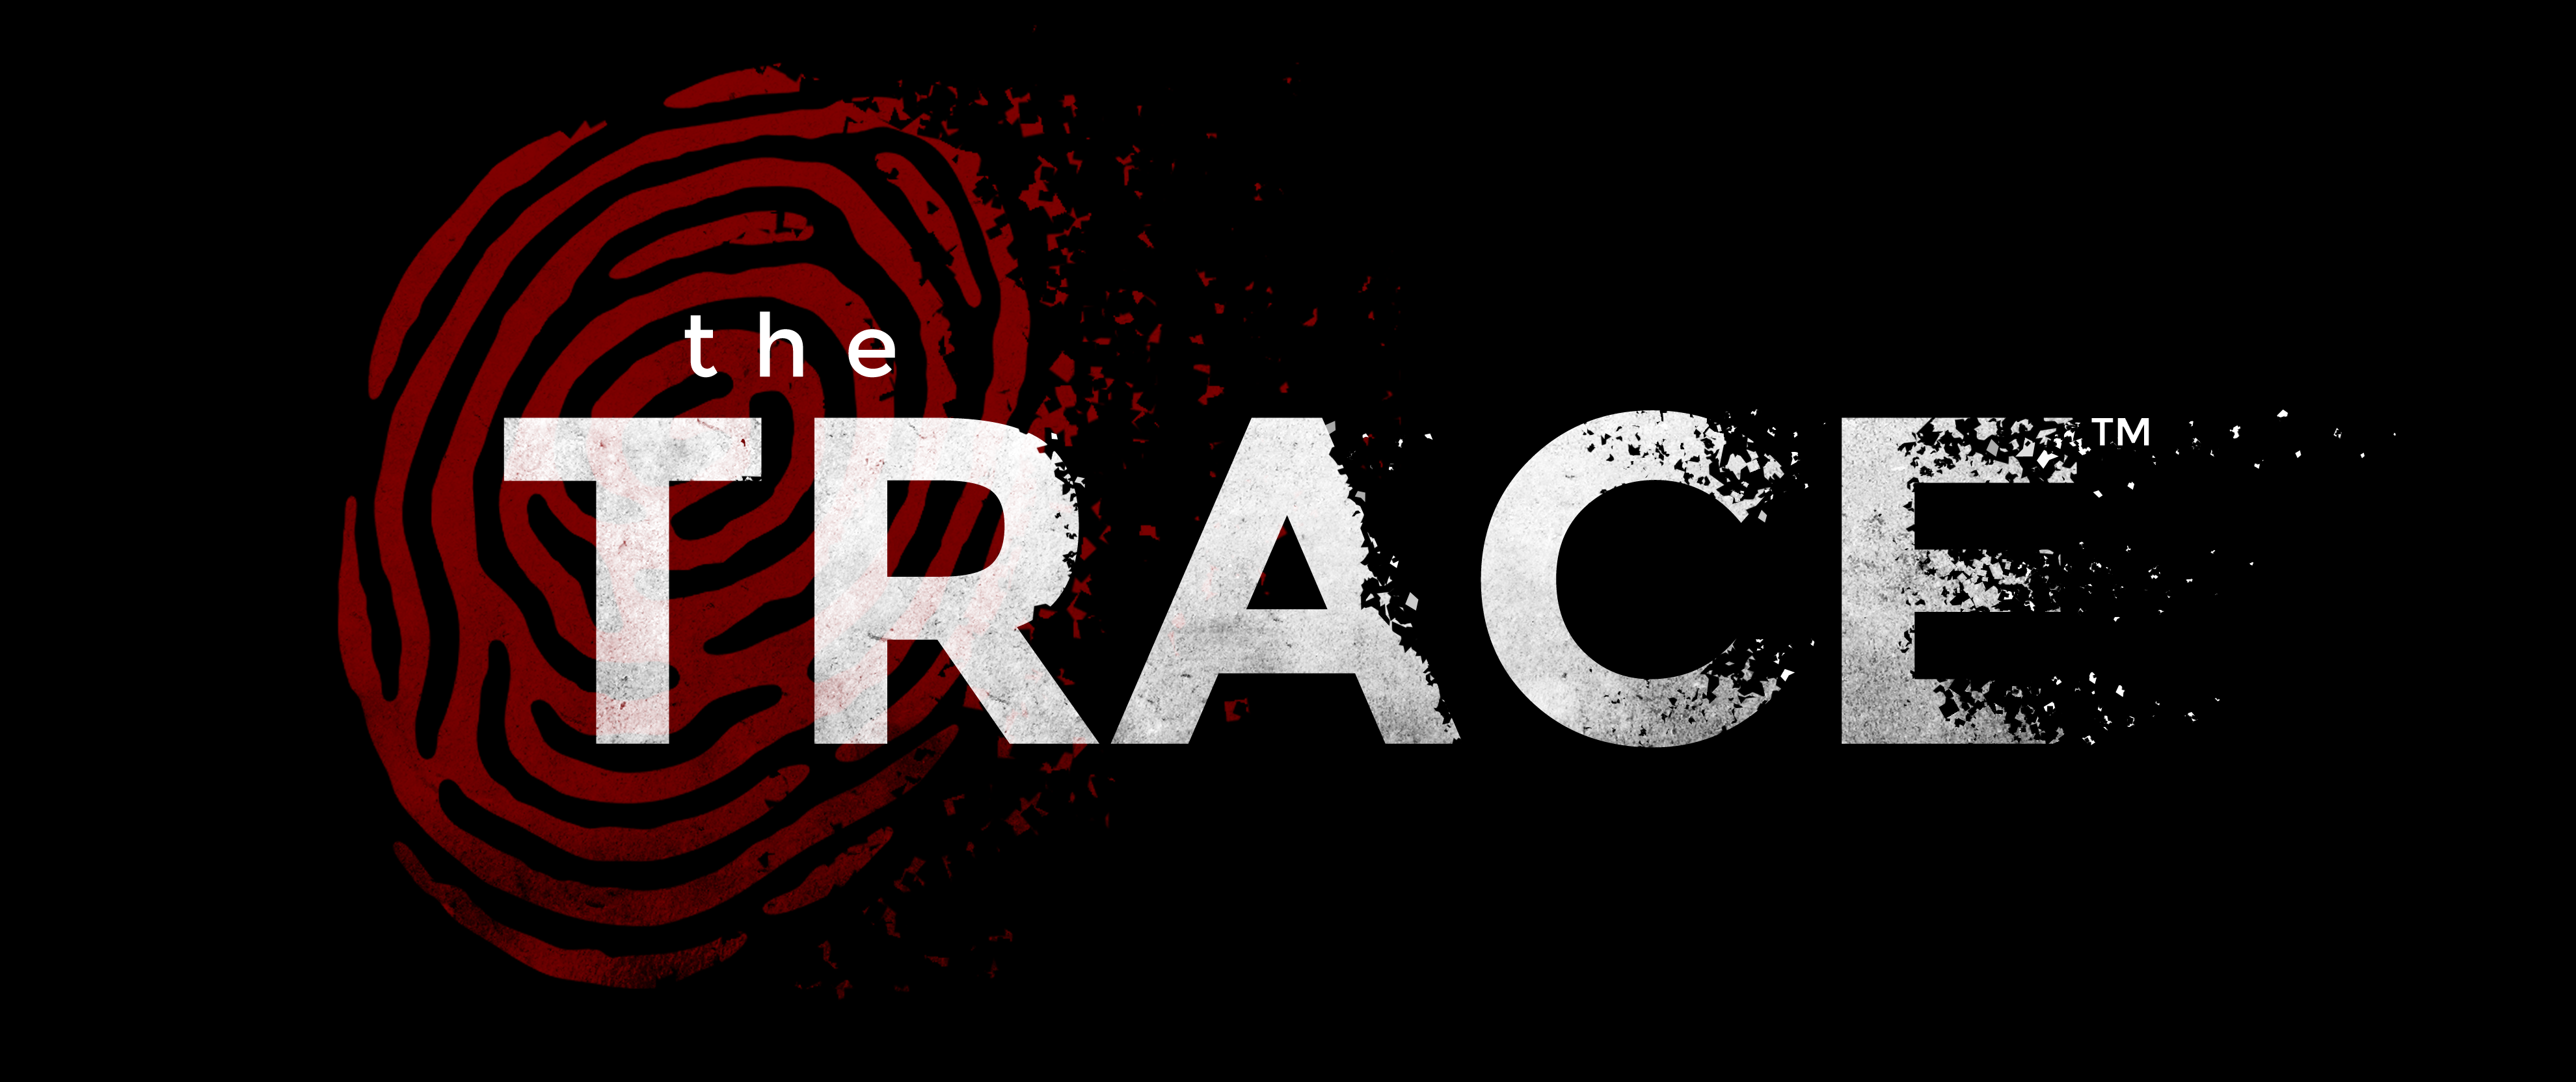 Become A Detective With The Trace